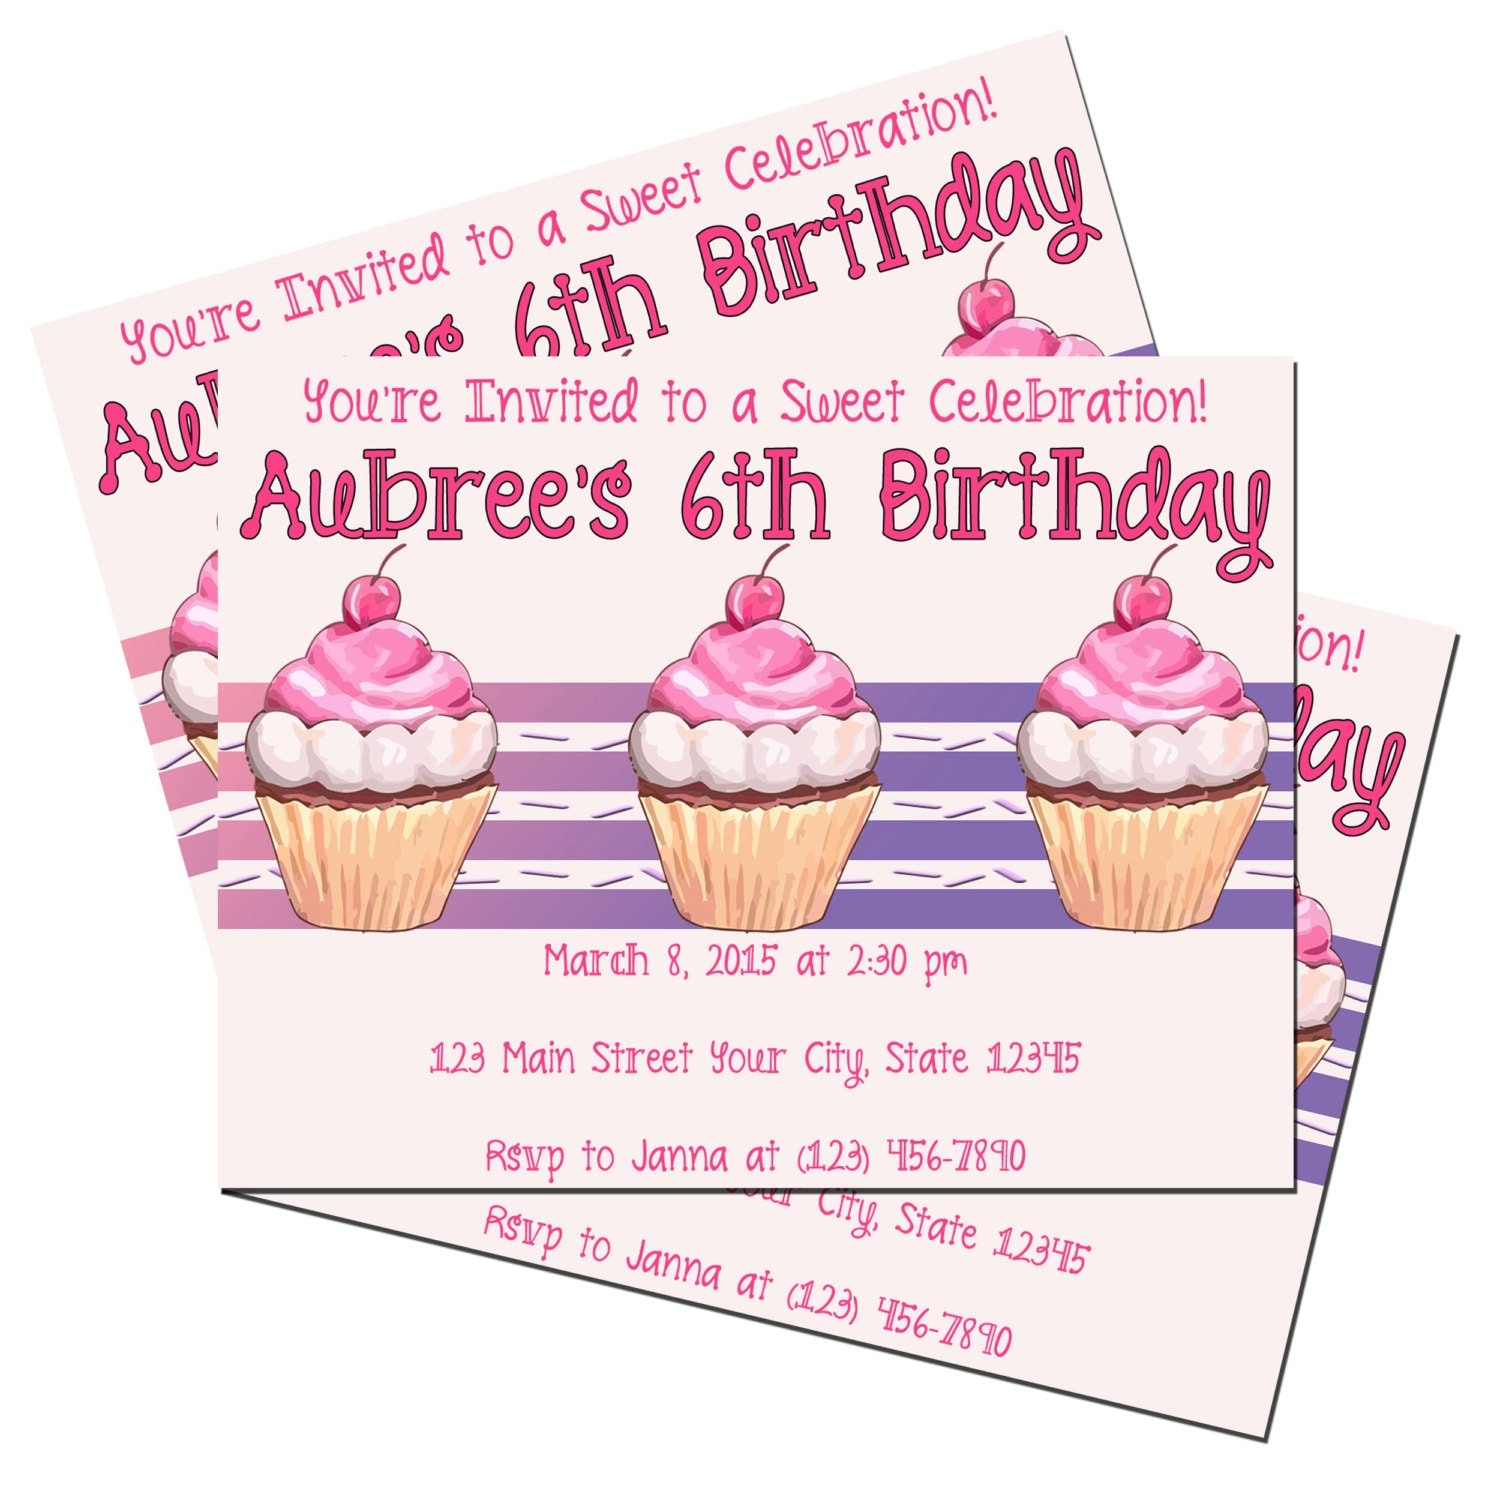 Cupcake Birthday Invitations - Cupcake Invitations - Birthday ...